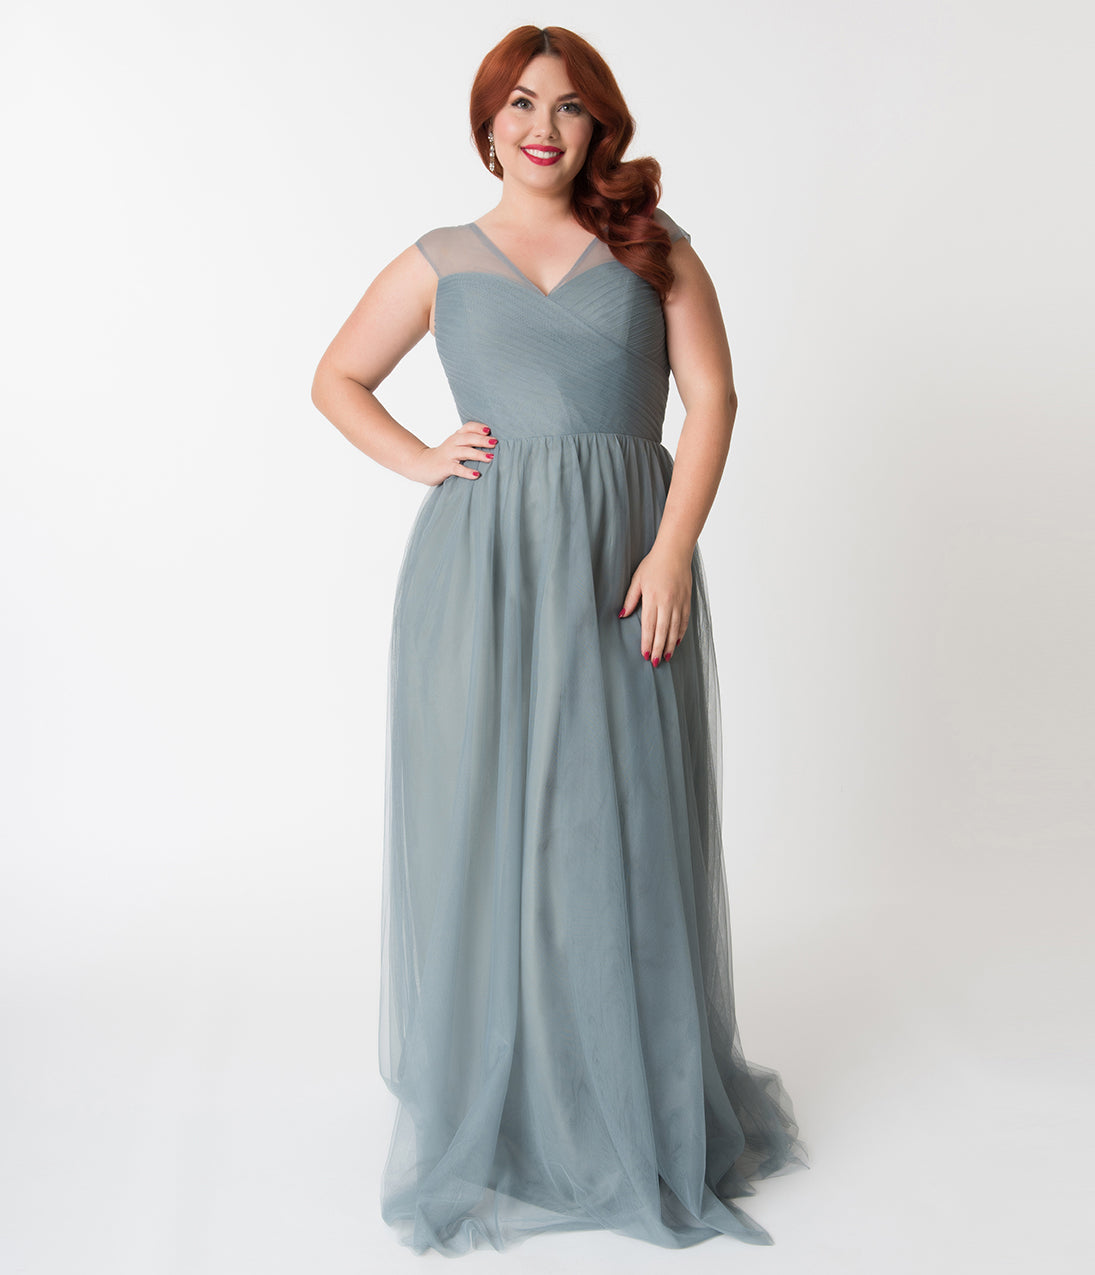 1950s Plus Size Dresses, Clothing | Plus Size Swing Dresses